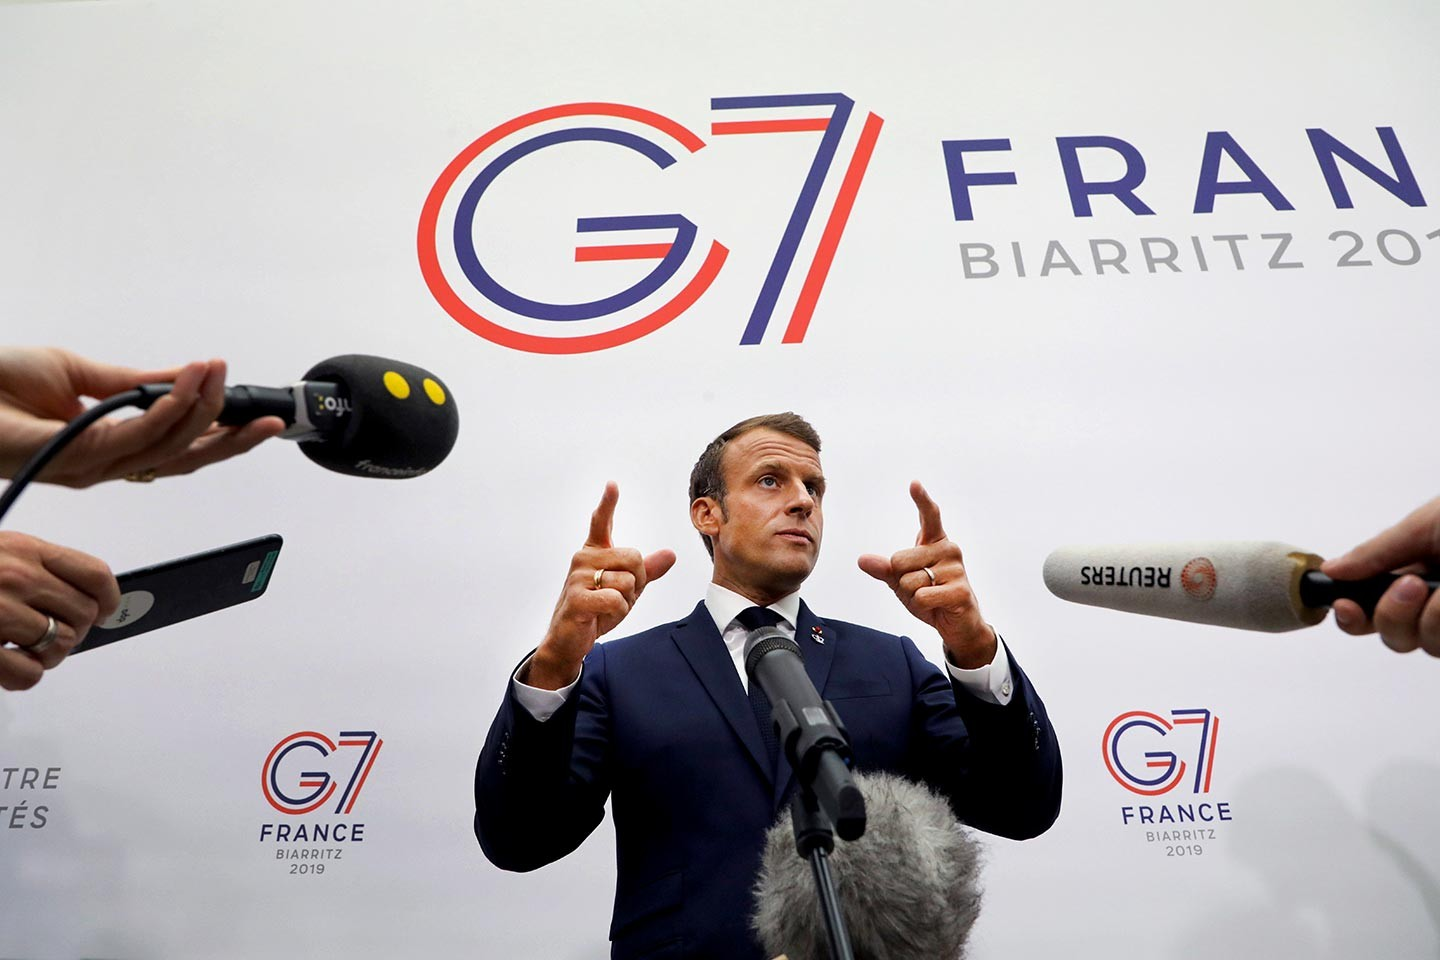 Au G7, Macron colle aux basques